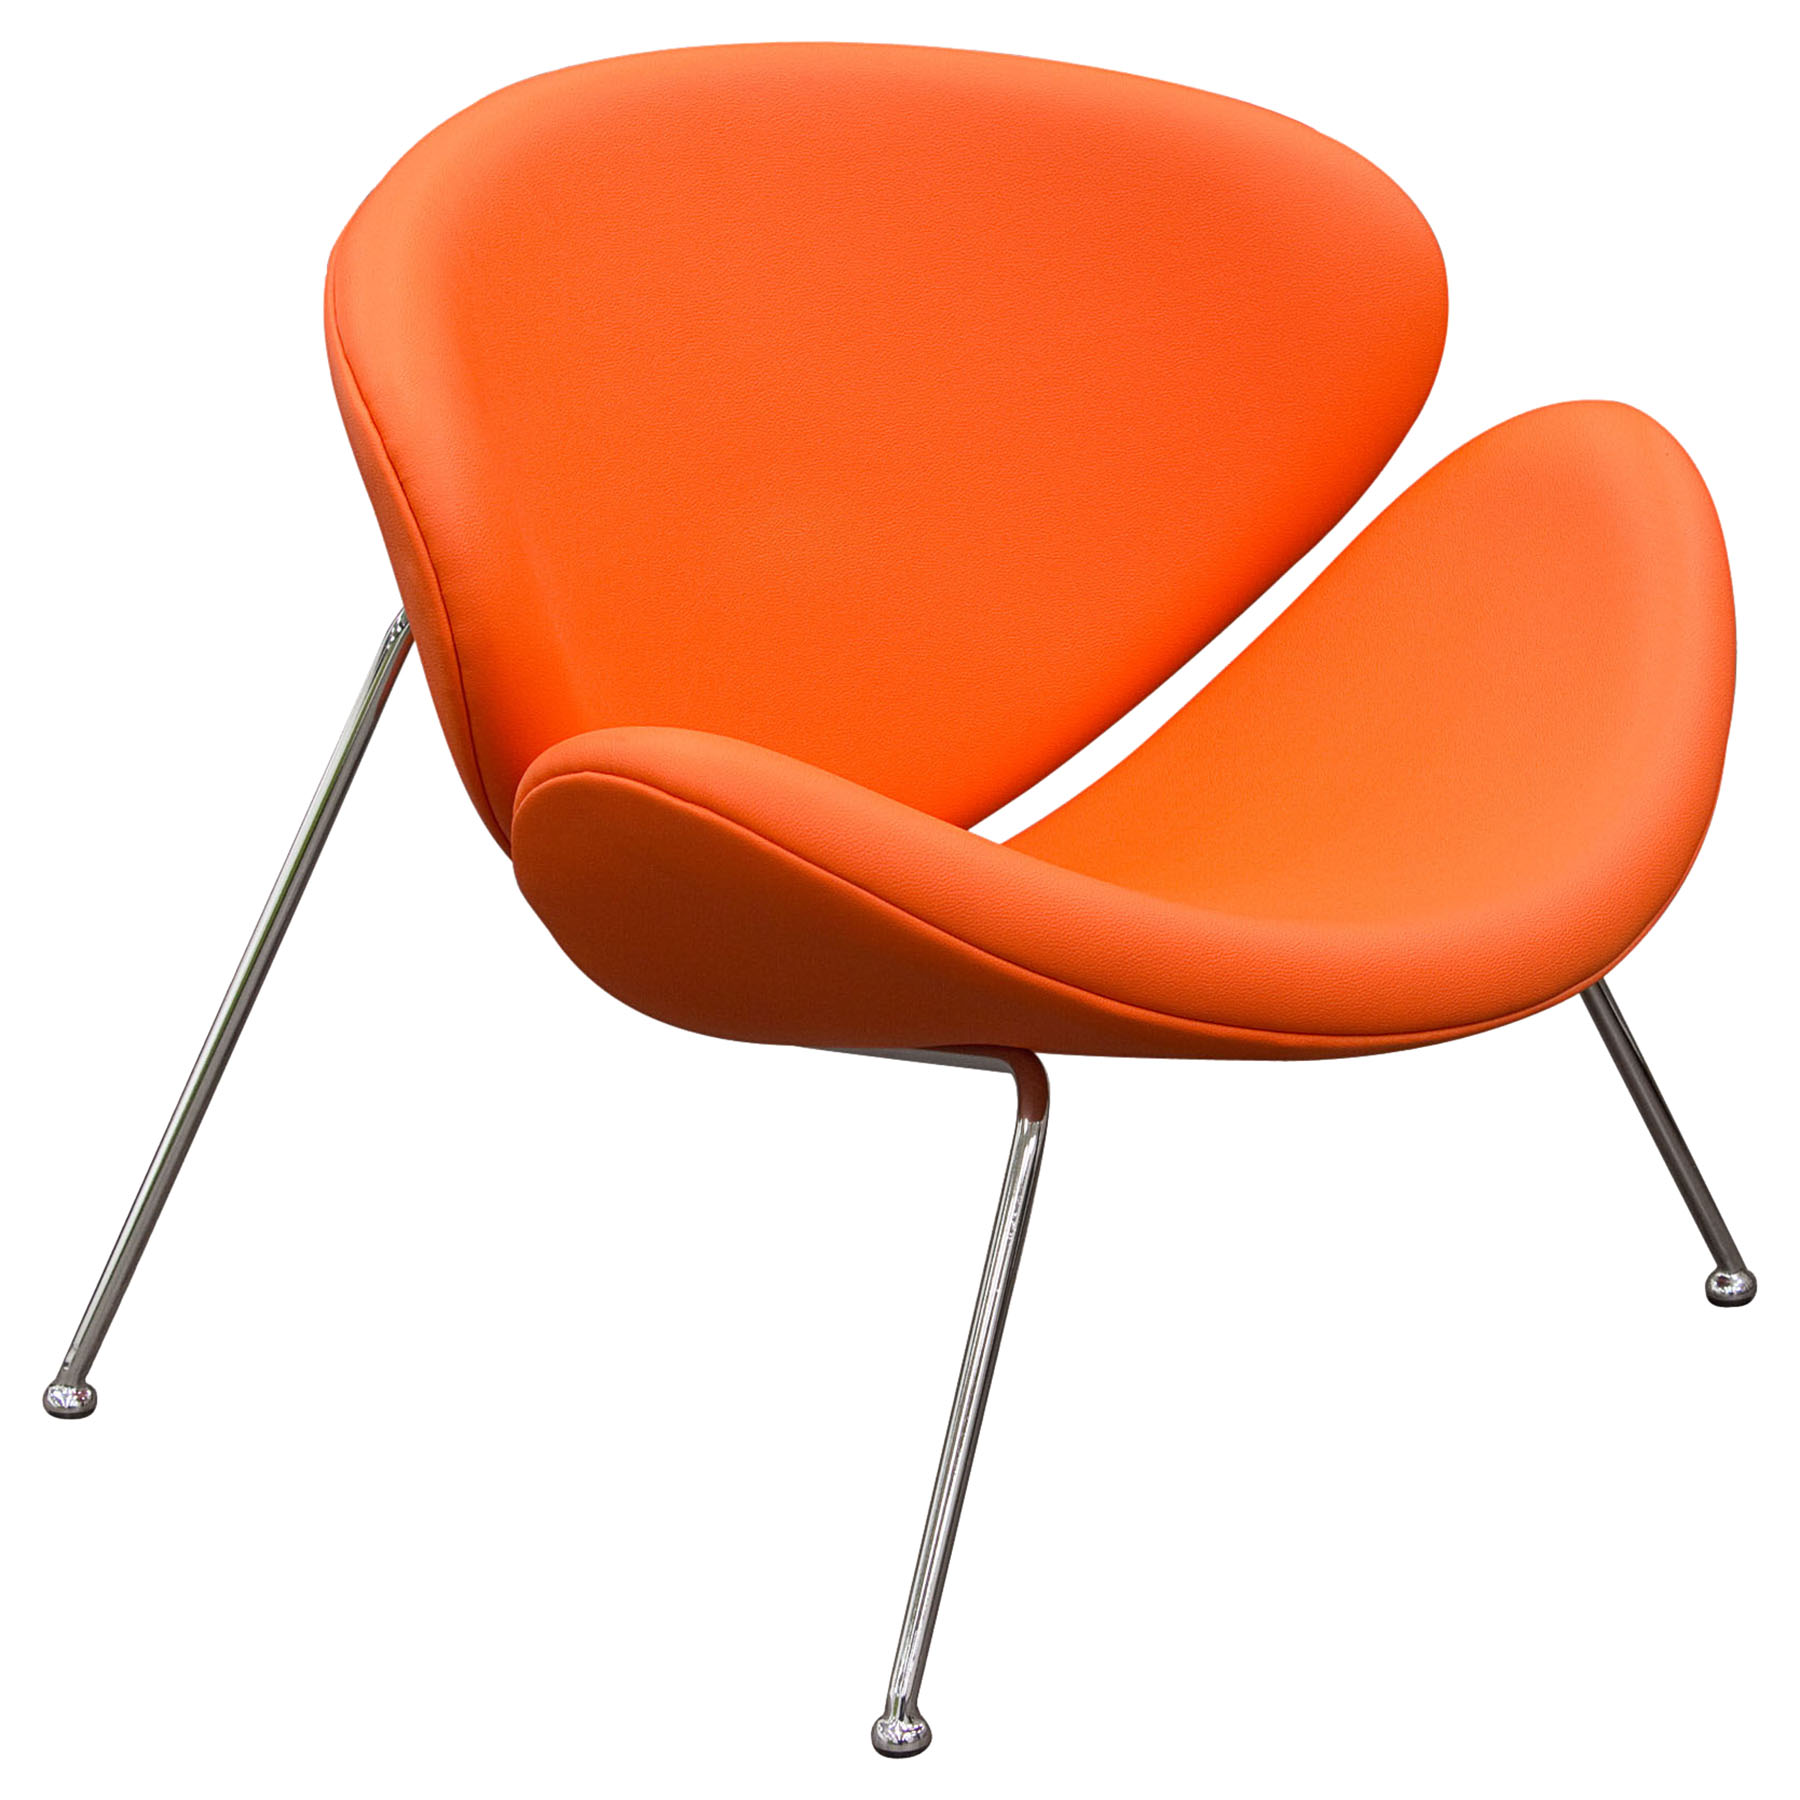 Roxy Accent Chair - Orange, Chrome